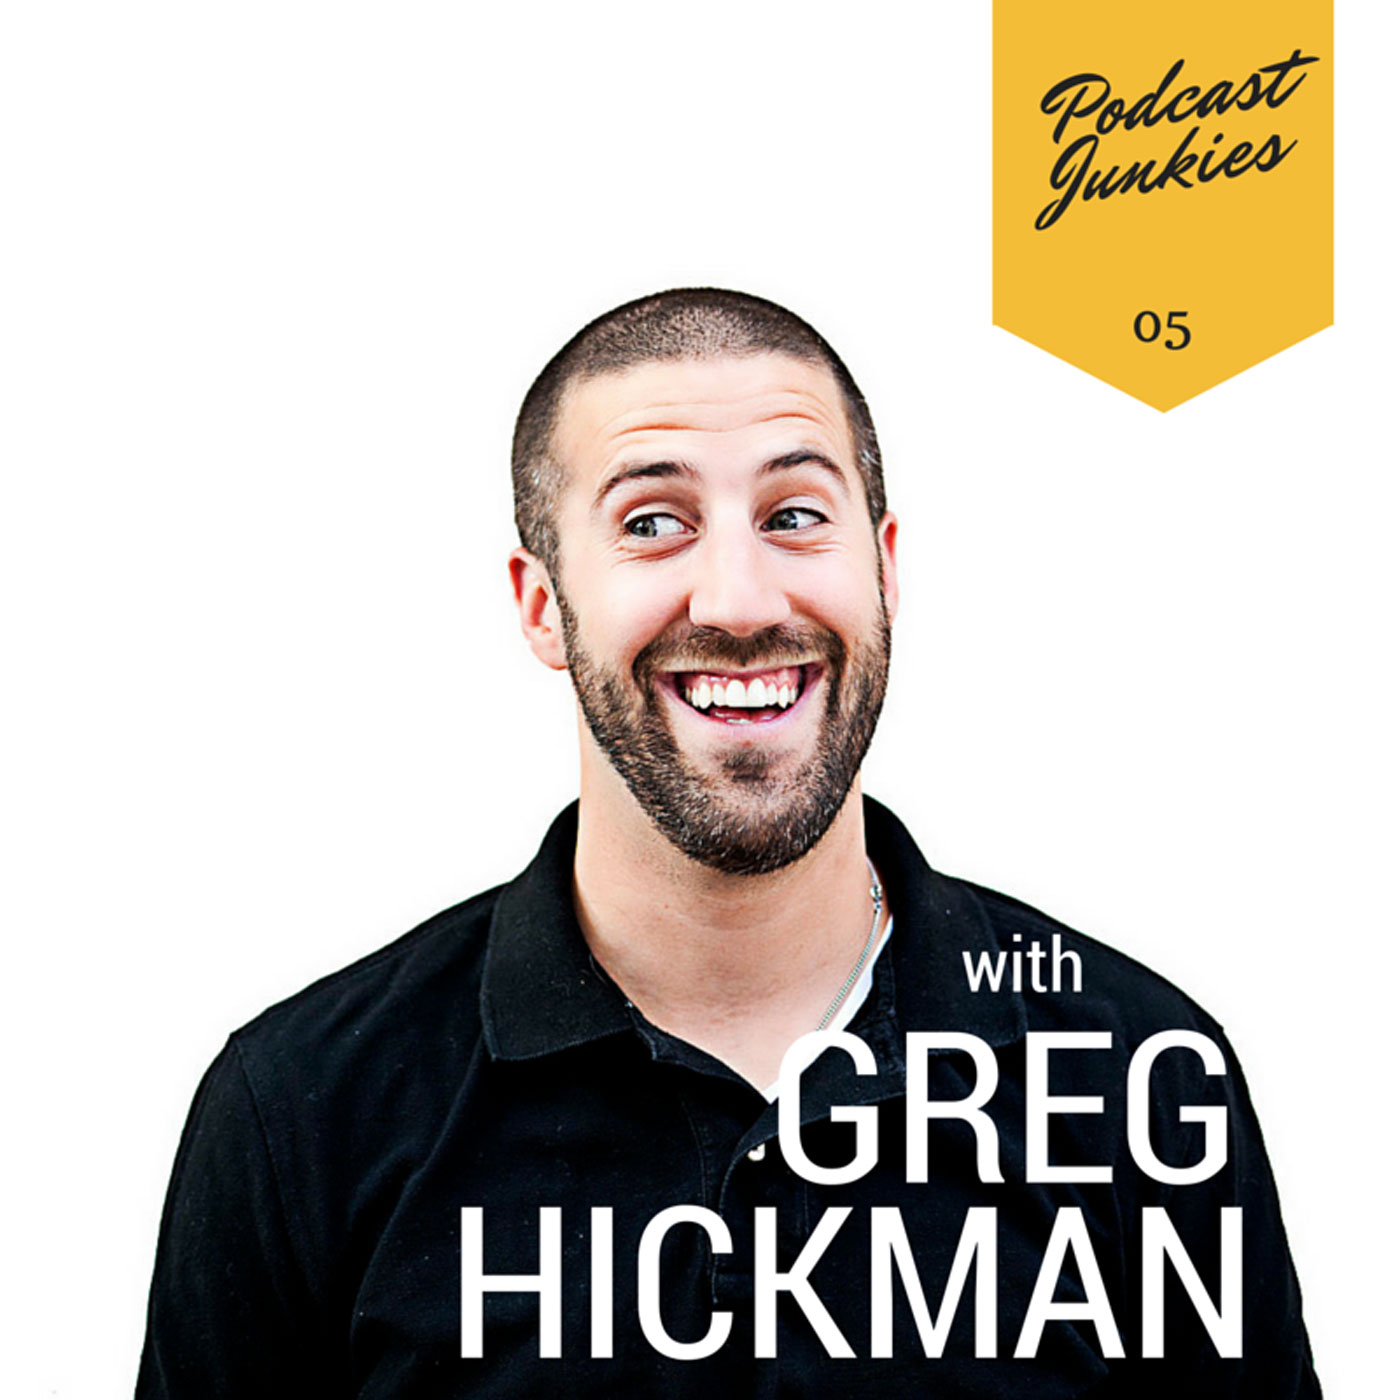 005 Greg Hickman | Find Your Hardcore Fans Because You Can't Make Everyone Happy